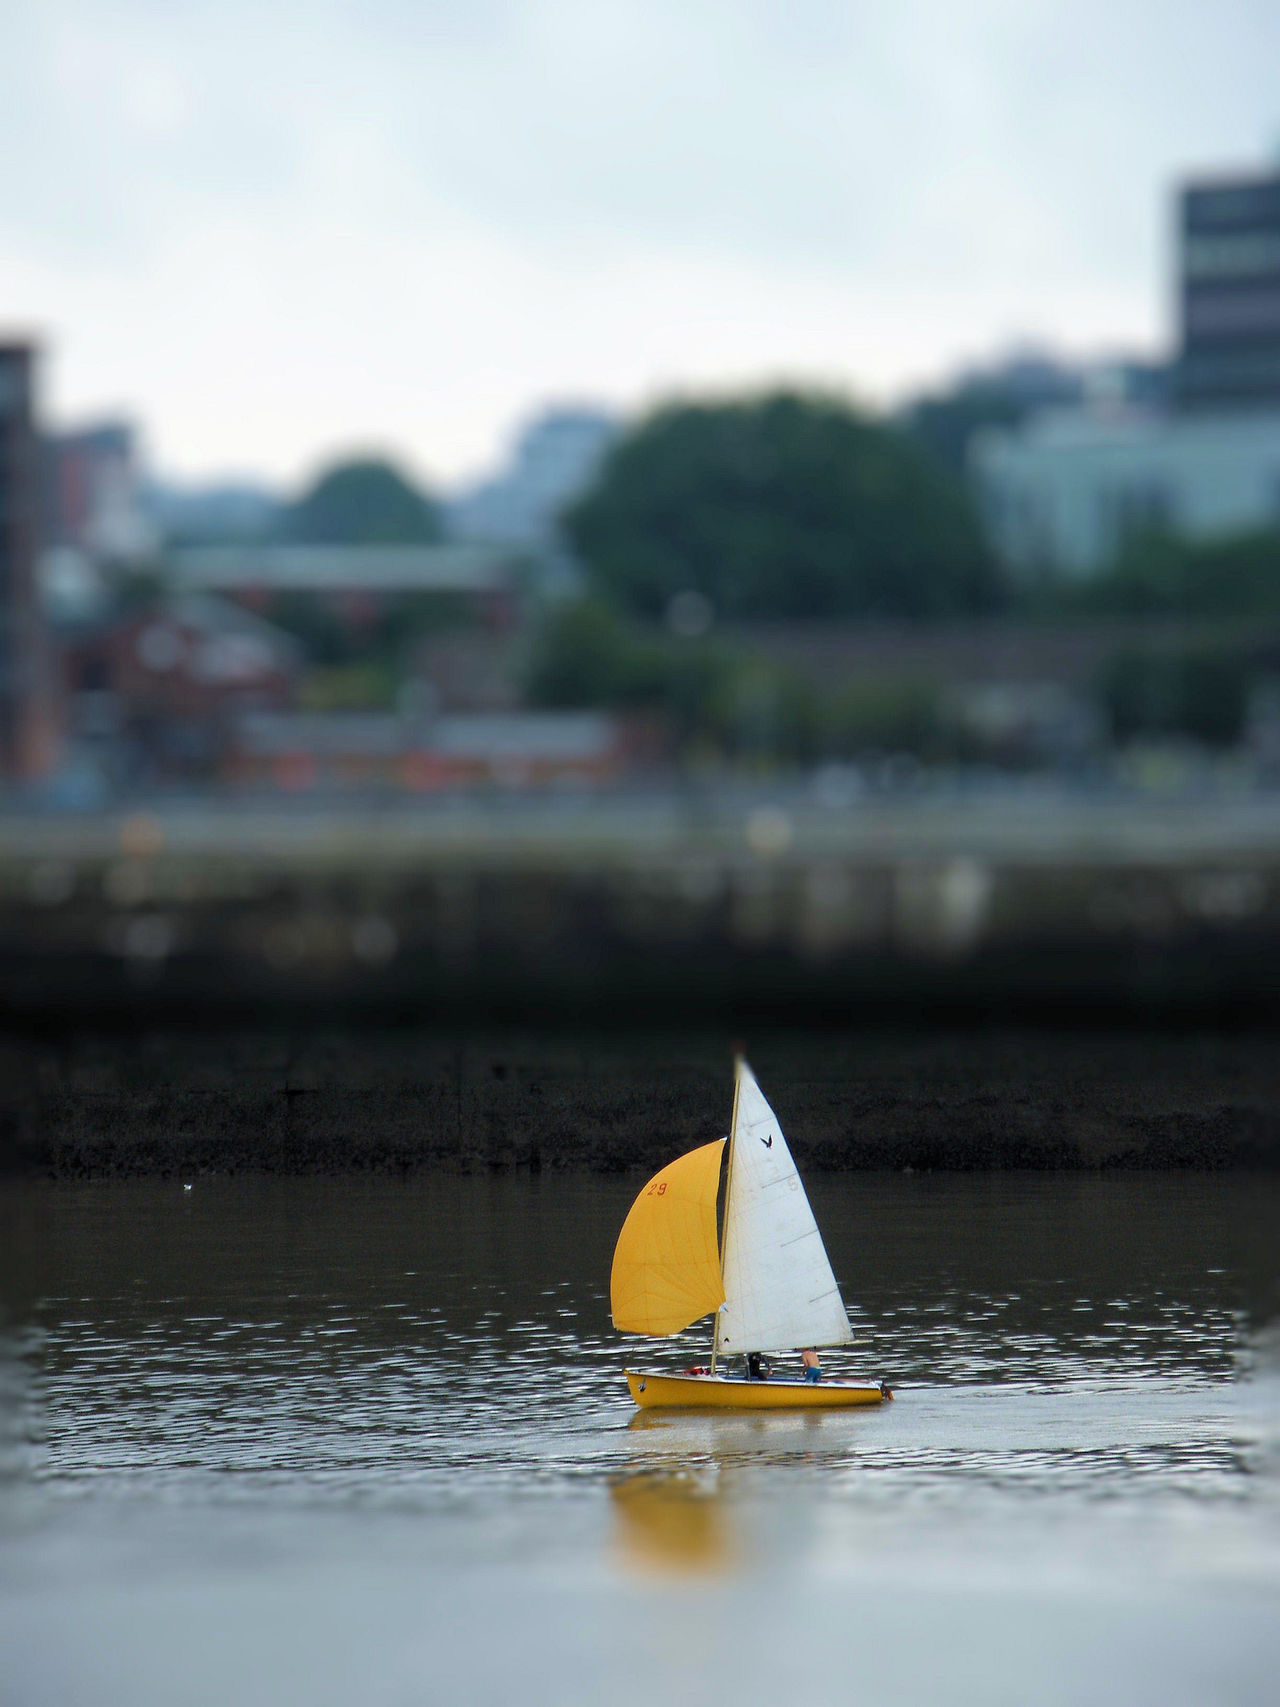 29 Boat Dingy Harbour Front Liverpool Nautical Vessel Sailboat Sailing Sailing Boat Sailing By Sailing Dingy Sky The Wind In The Sails Tilt Shift Two Men In A Boat Water Yellow Sail